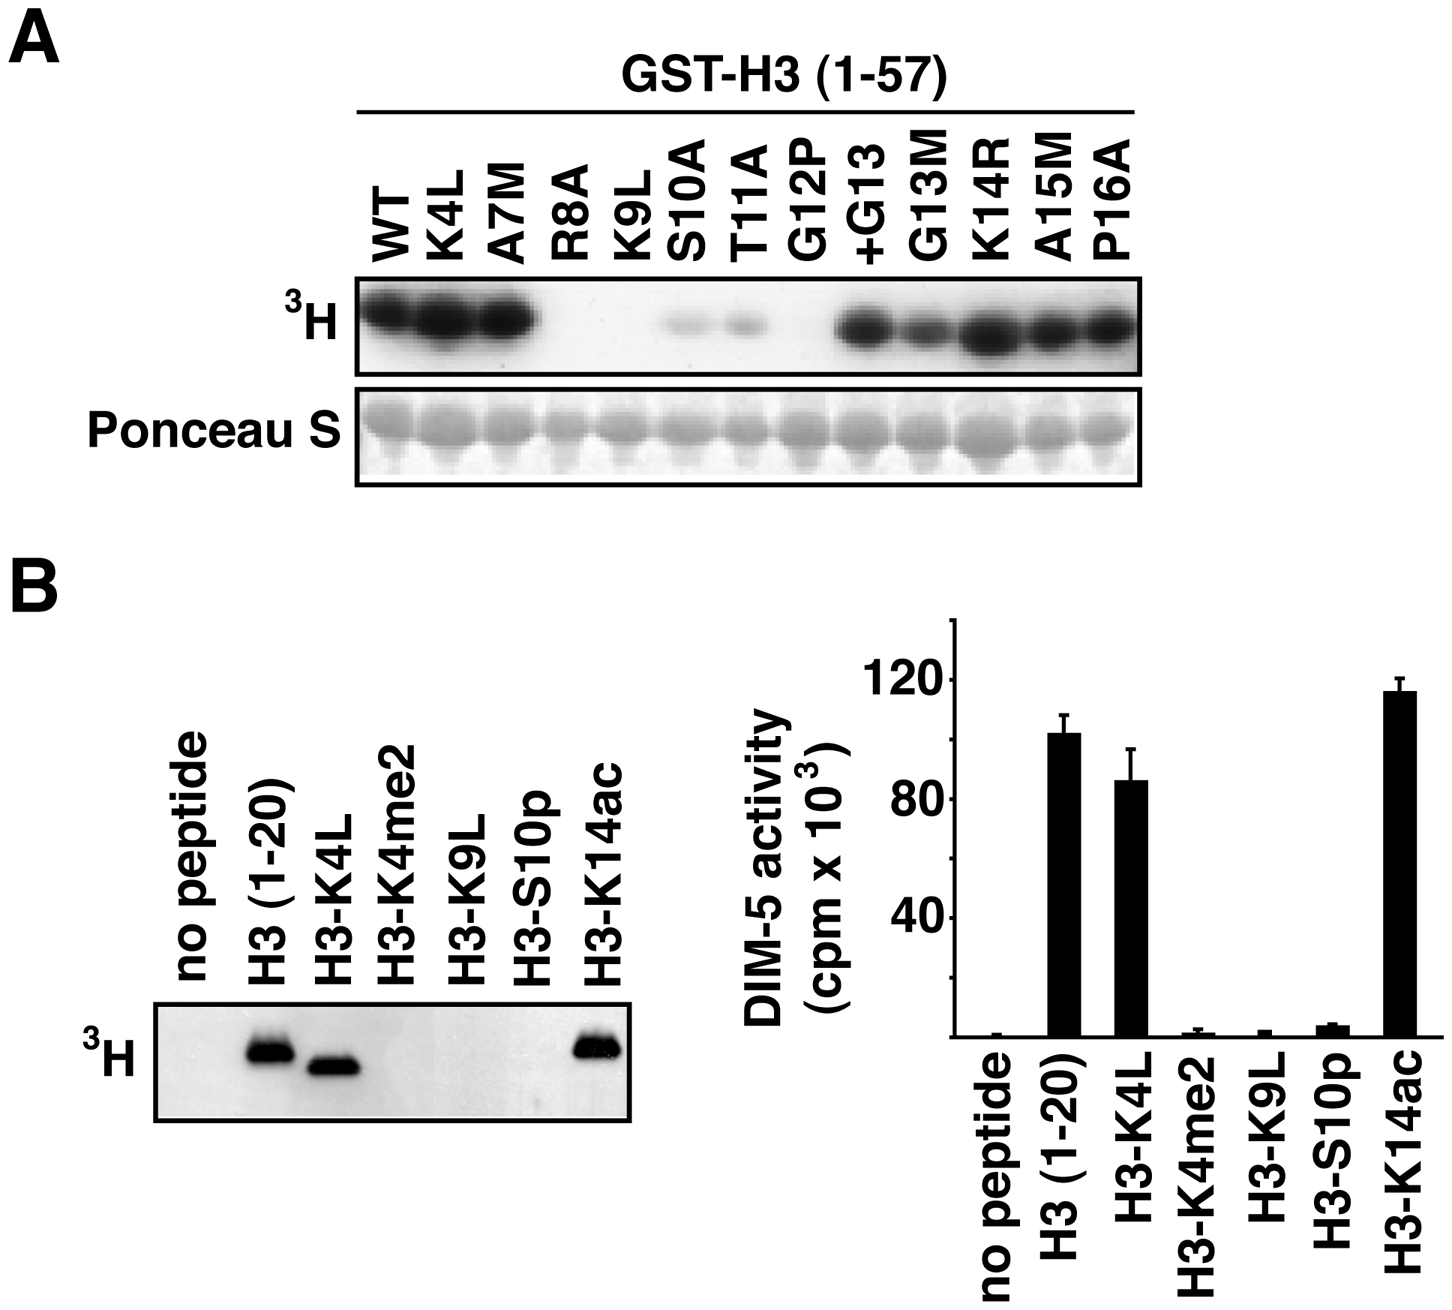 DIM-5 activity on histone H3 peptides.